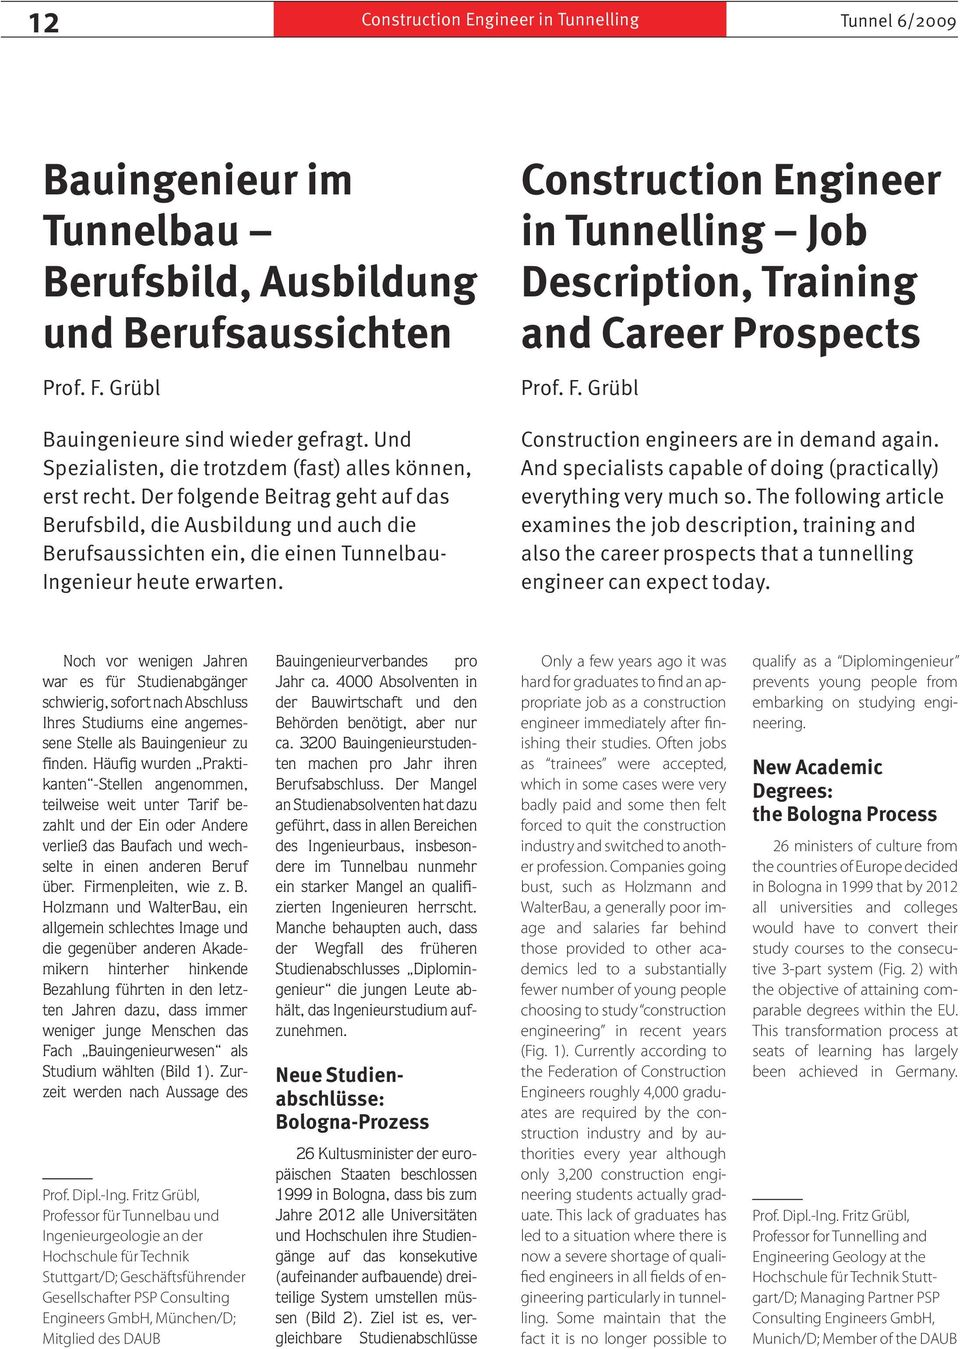 Construction Engineer in Tunnelling Job Description, Training and Career Prospects Prof. F. Grübl Construction engineers are in demand again.